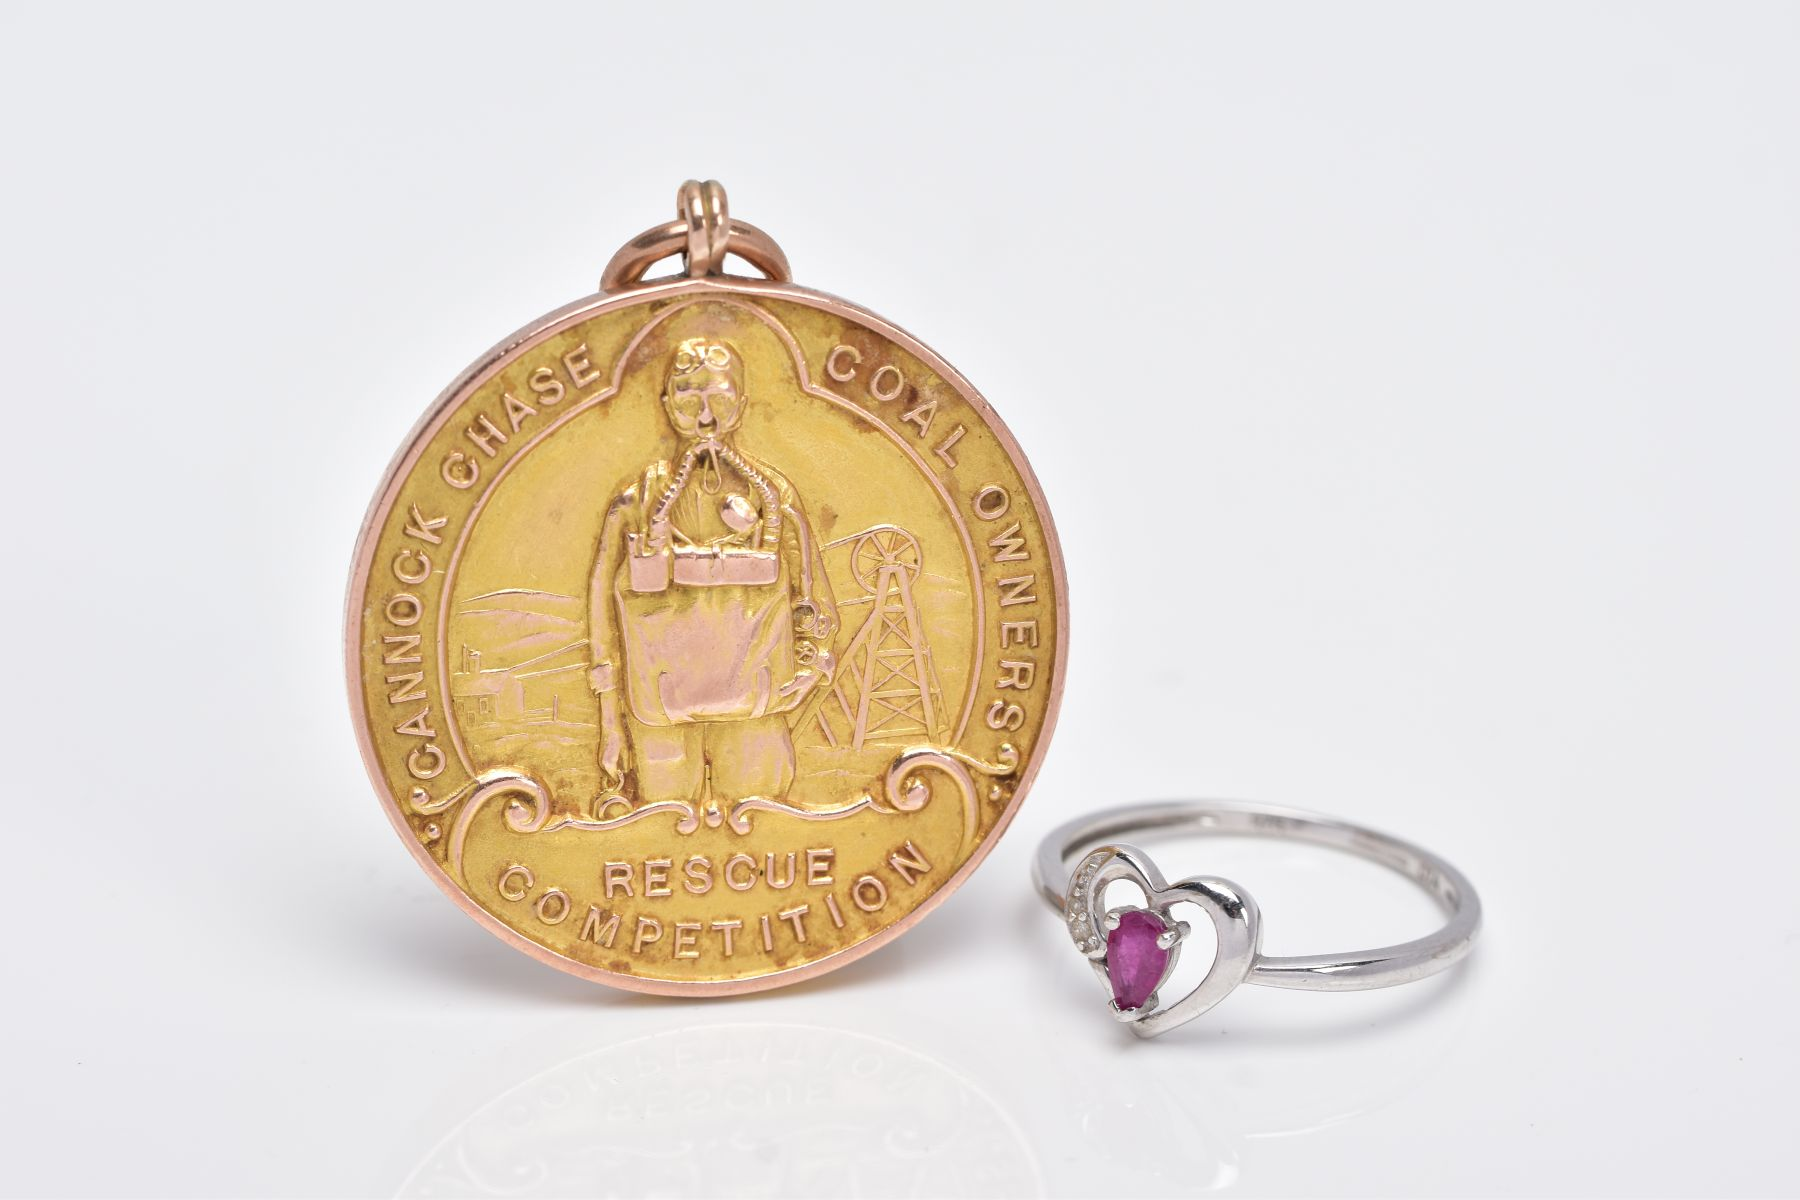 A 9CT GOLD MOUNTED MEDAL AND A 9CT WHITE GOLD RUBY AND DIAMOND RING, the medal of a circular form,